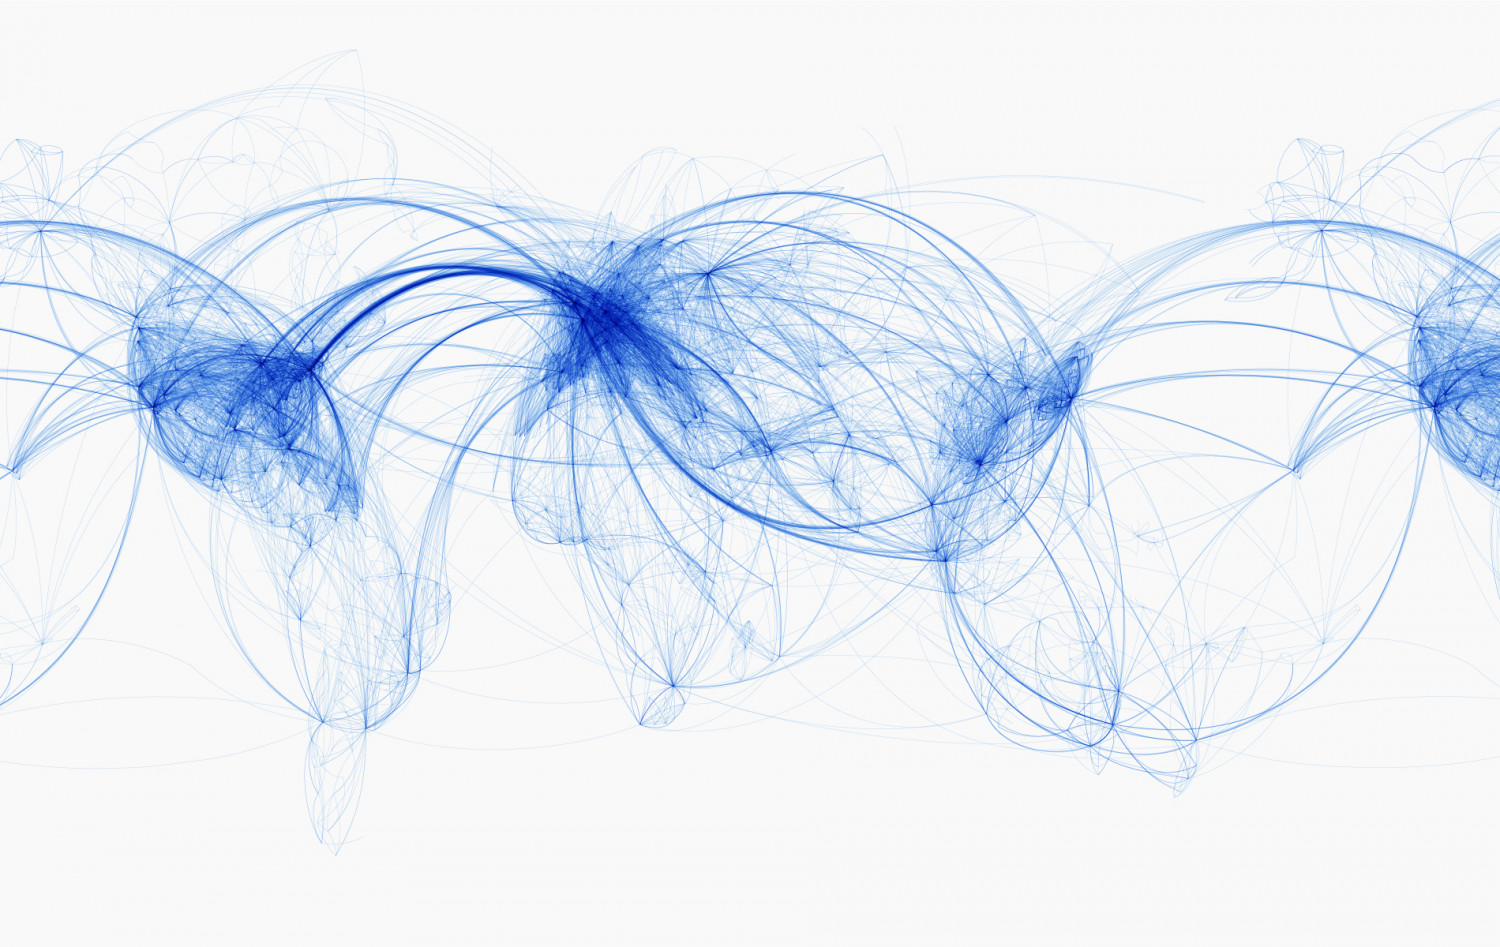 World Airline Routes Map | Visual.ly on transportation route maps, delta airlines international maps, airline flights, shipping route maps, railroad route maps, expressjet route maps, klm route maps, airline malaysia airbus a380, stagecoach route maps, airline british airways, flight route maps, jetblue route maps, airline schedules, delta global route maps, airline fares, airline jobs, air route maps, tour operator route maps,